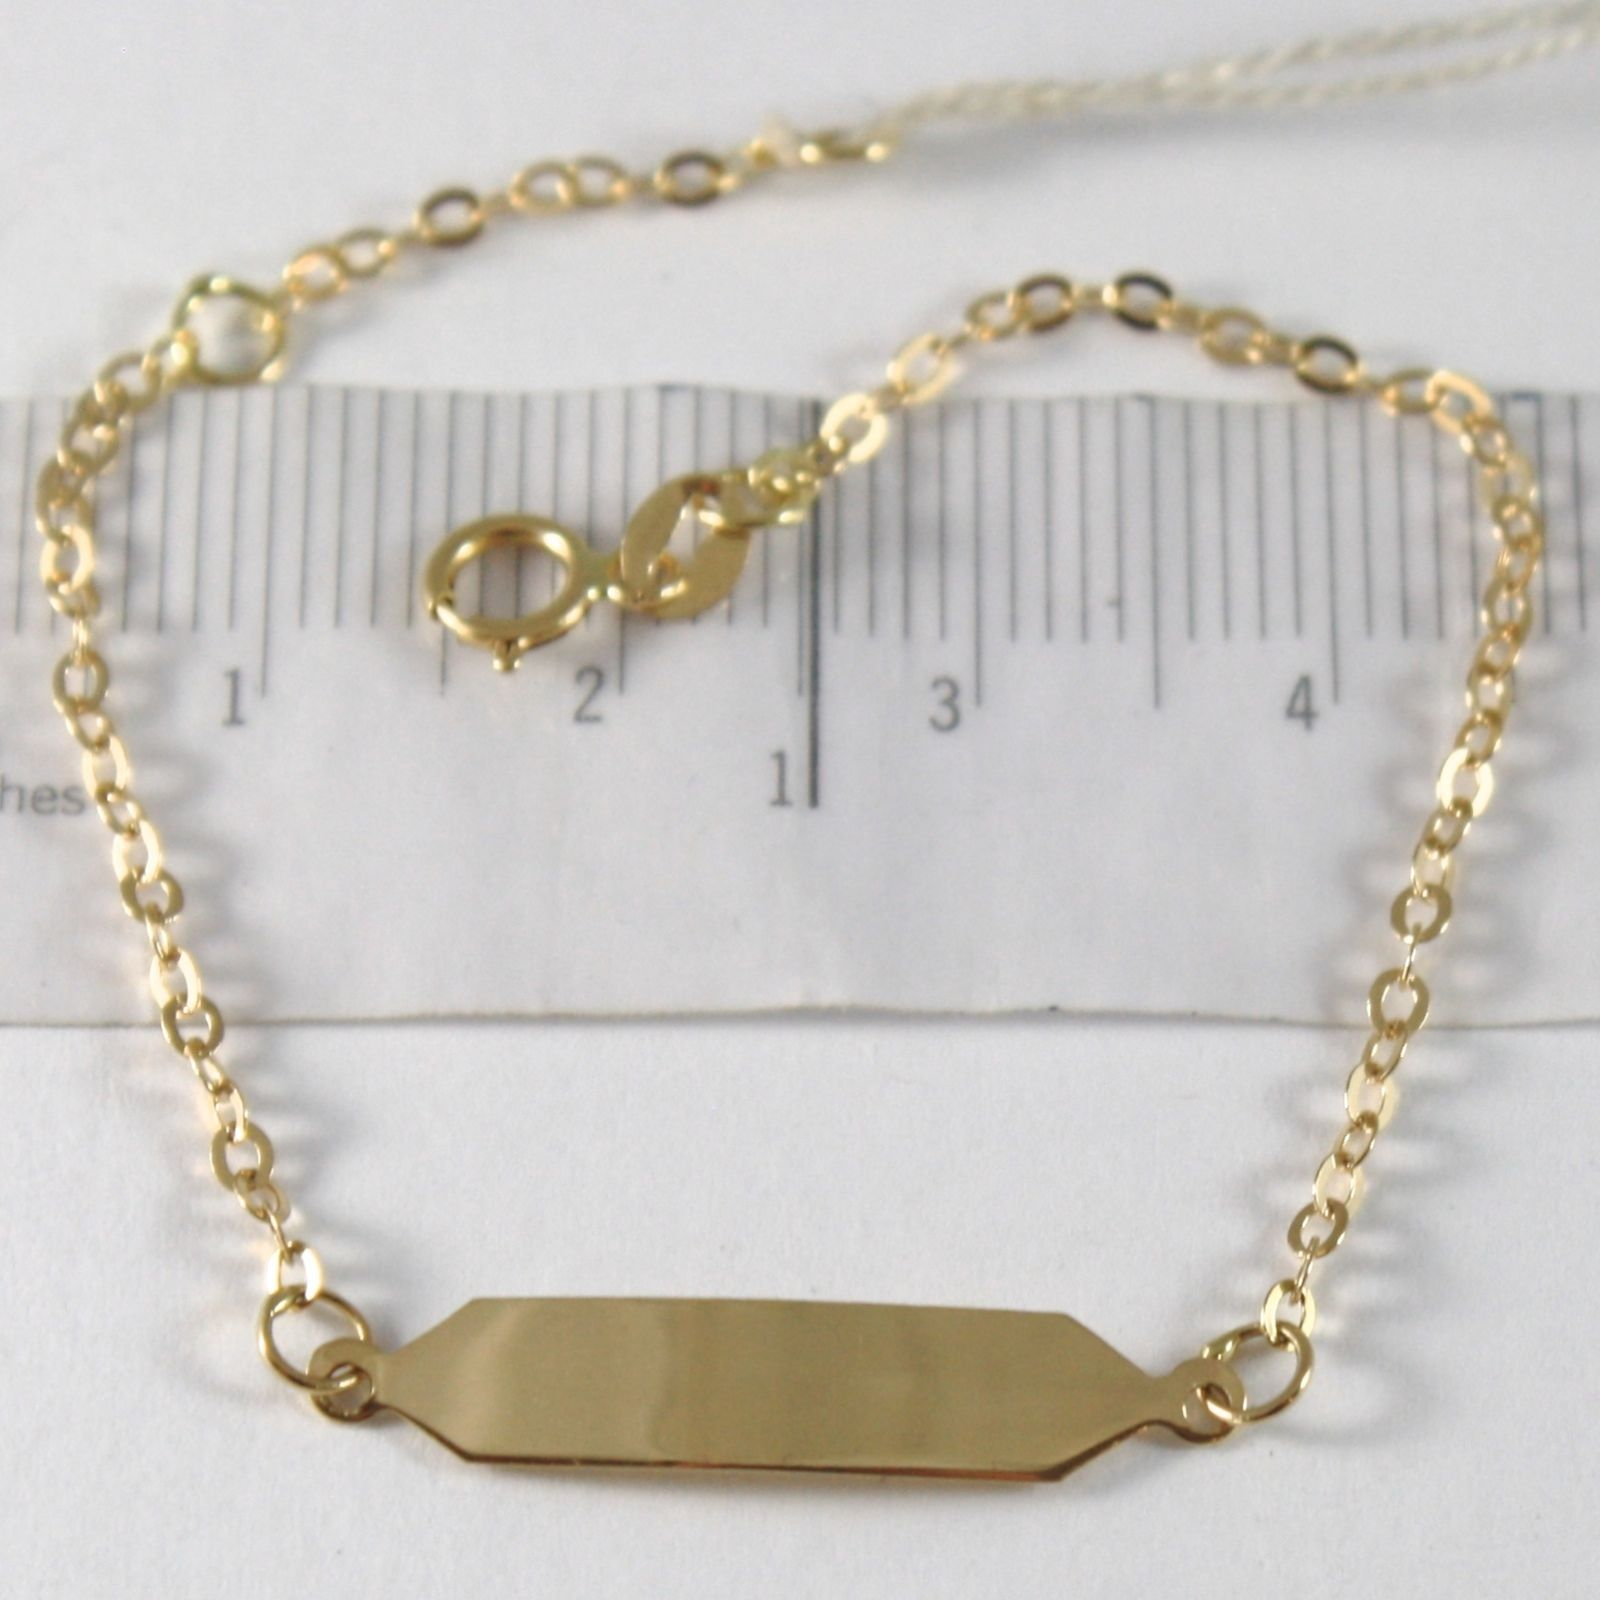 BRACELET YELLOW GOLD 750 18K, CIRCLES ROLO' AND PLATE FOR INCISION, 15 CM